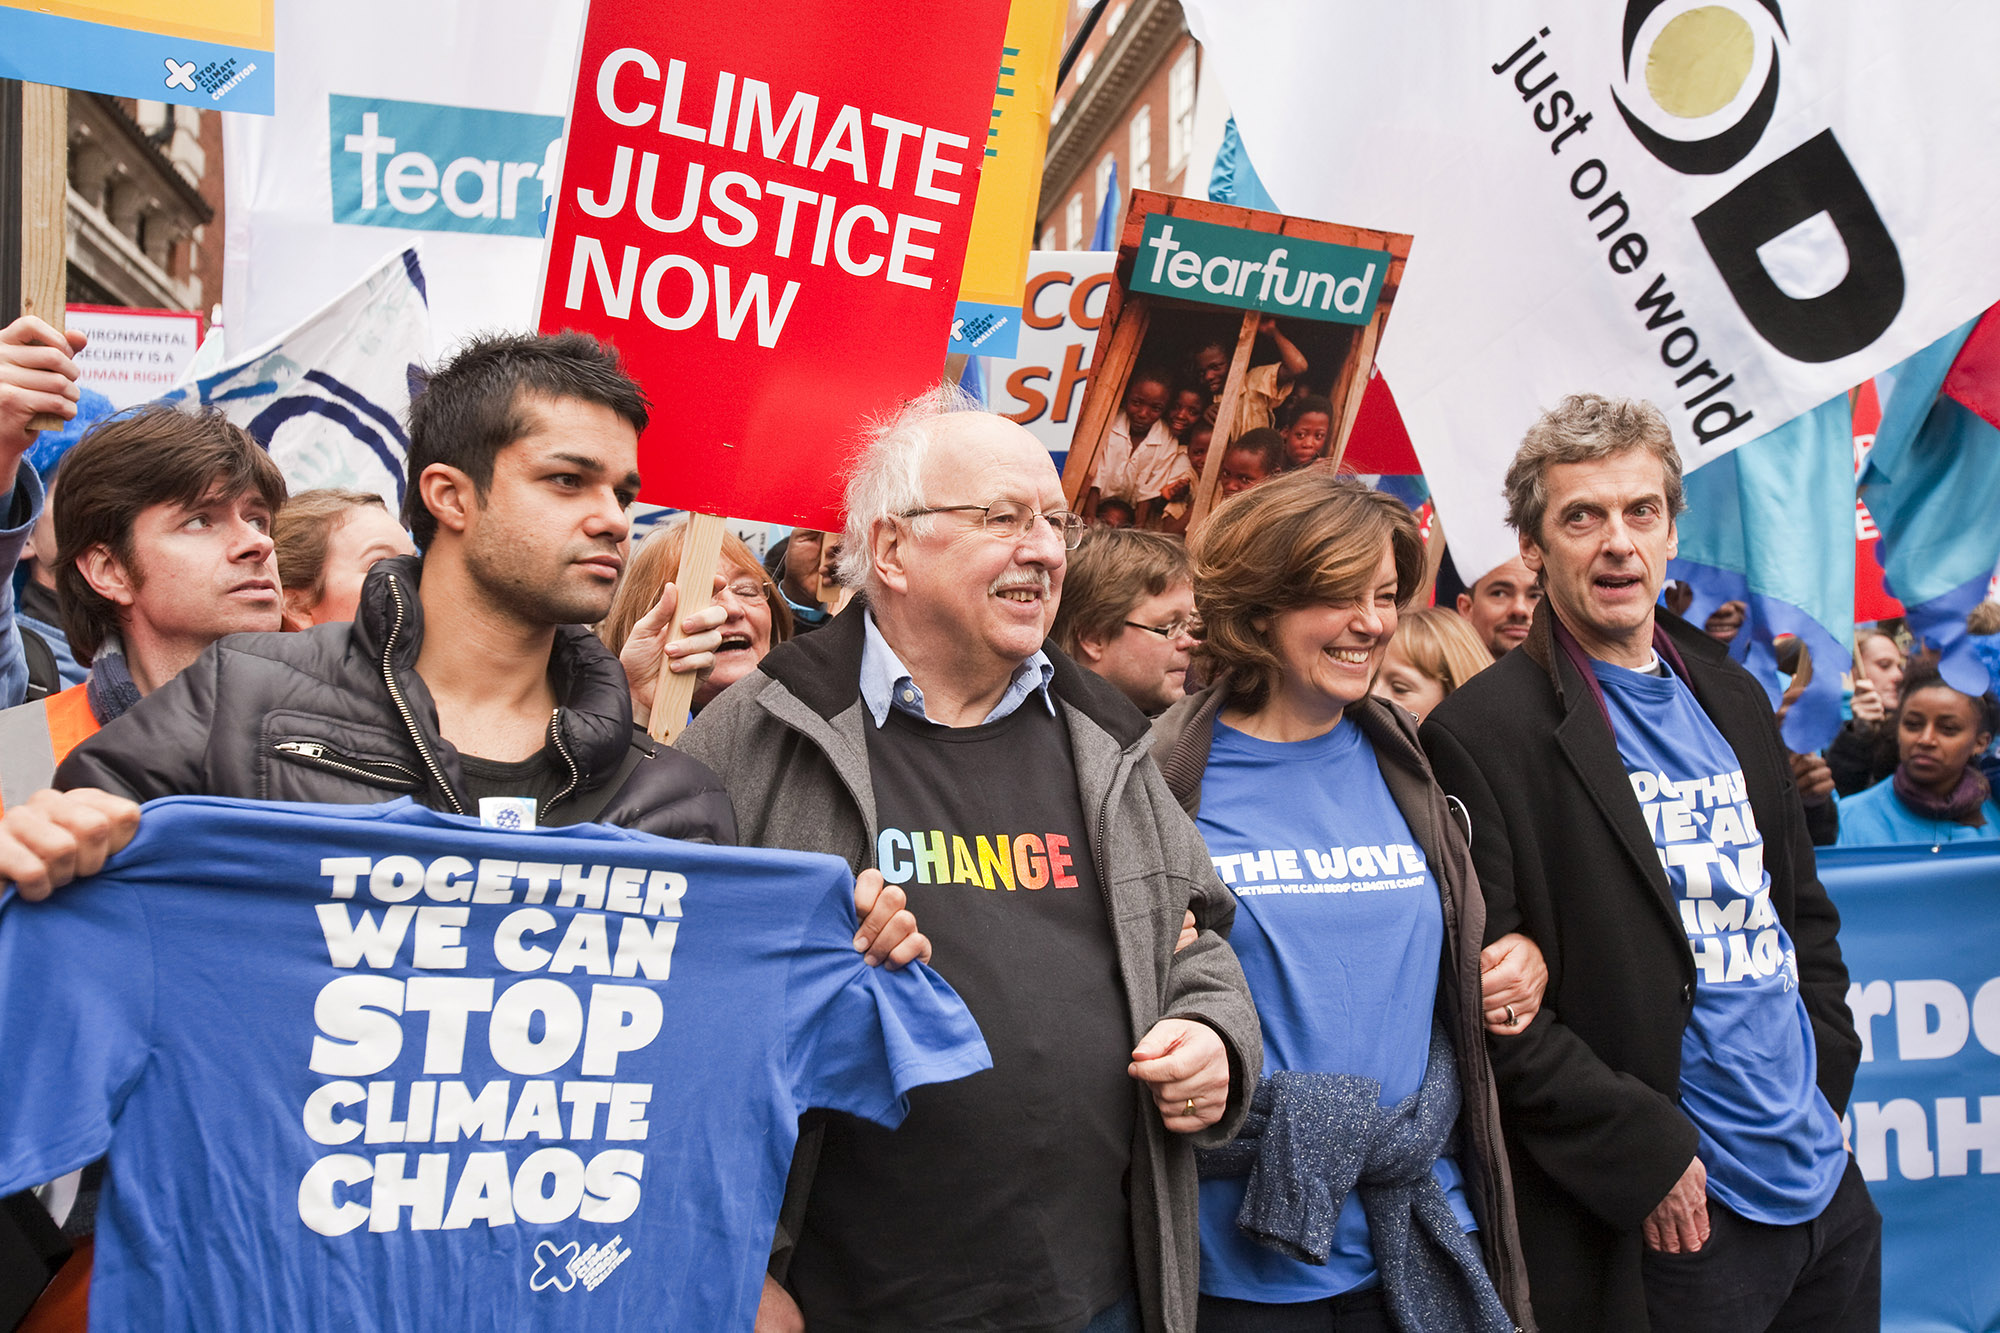 Celebrities including the actor Peter Capaldi and the former BBC weatherman Michael Fish join the Wave climate change protest rally.